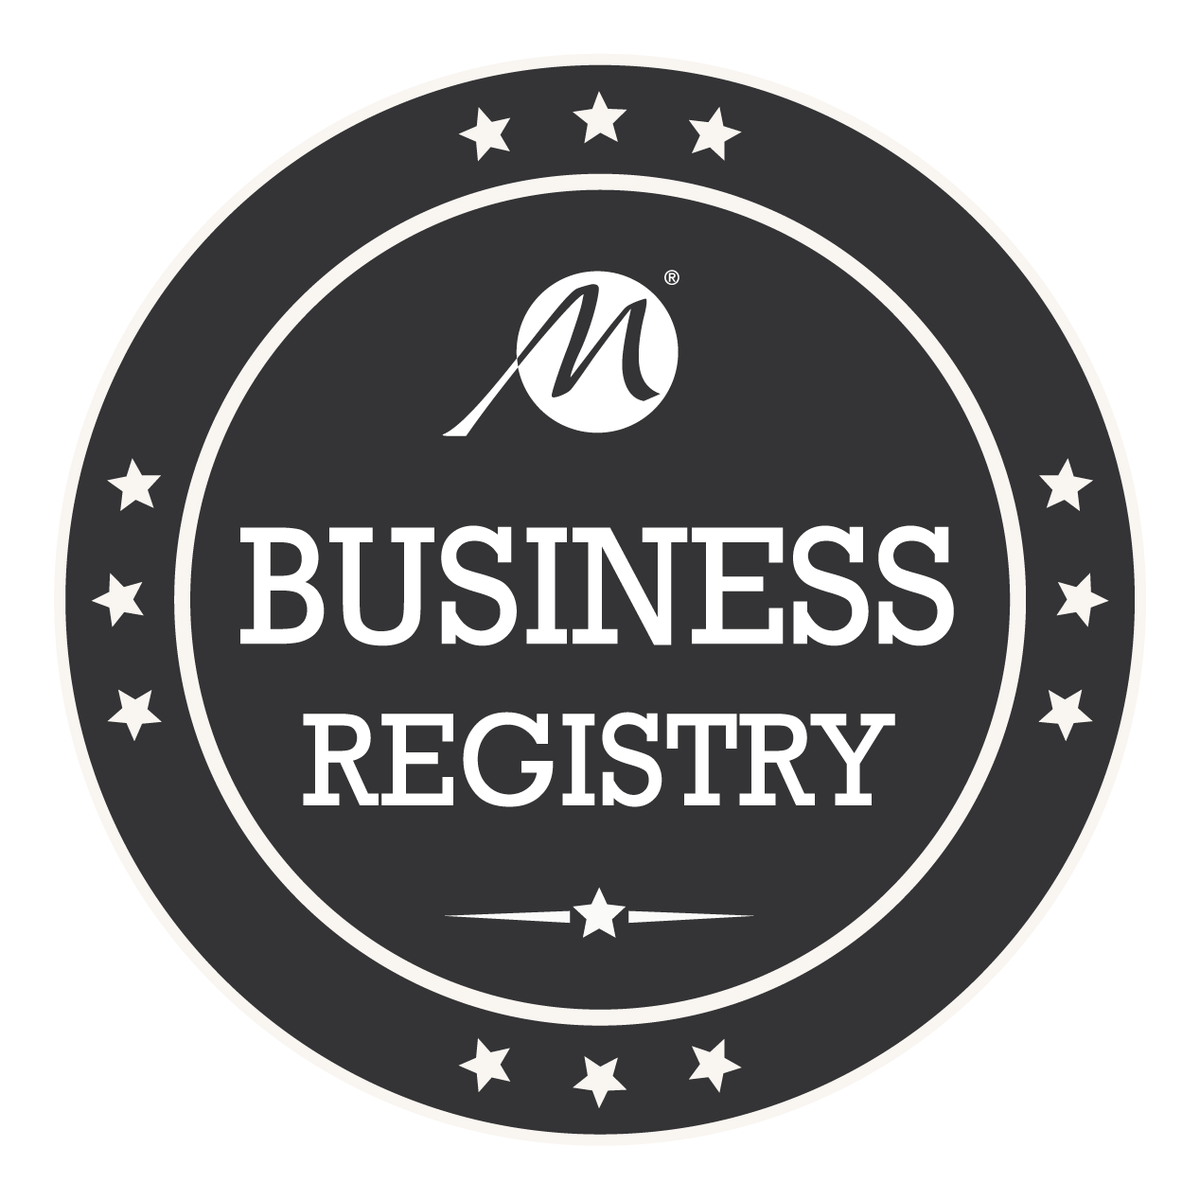 Business Registry